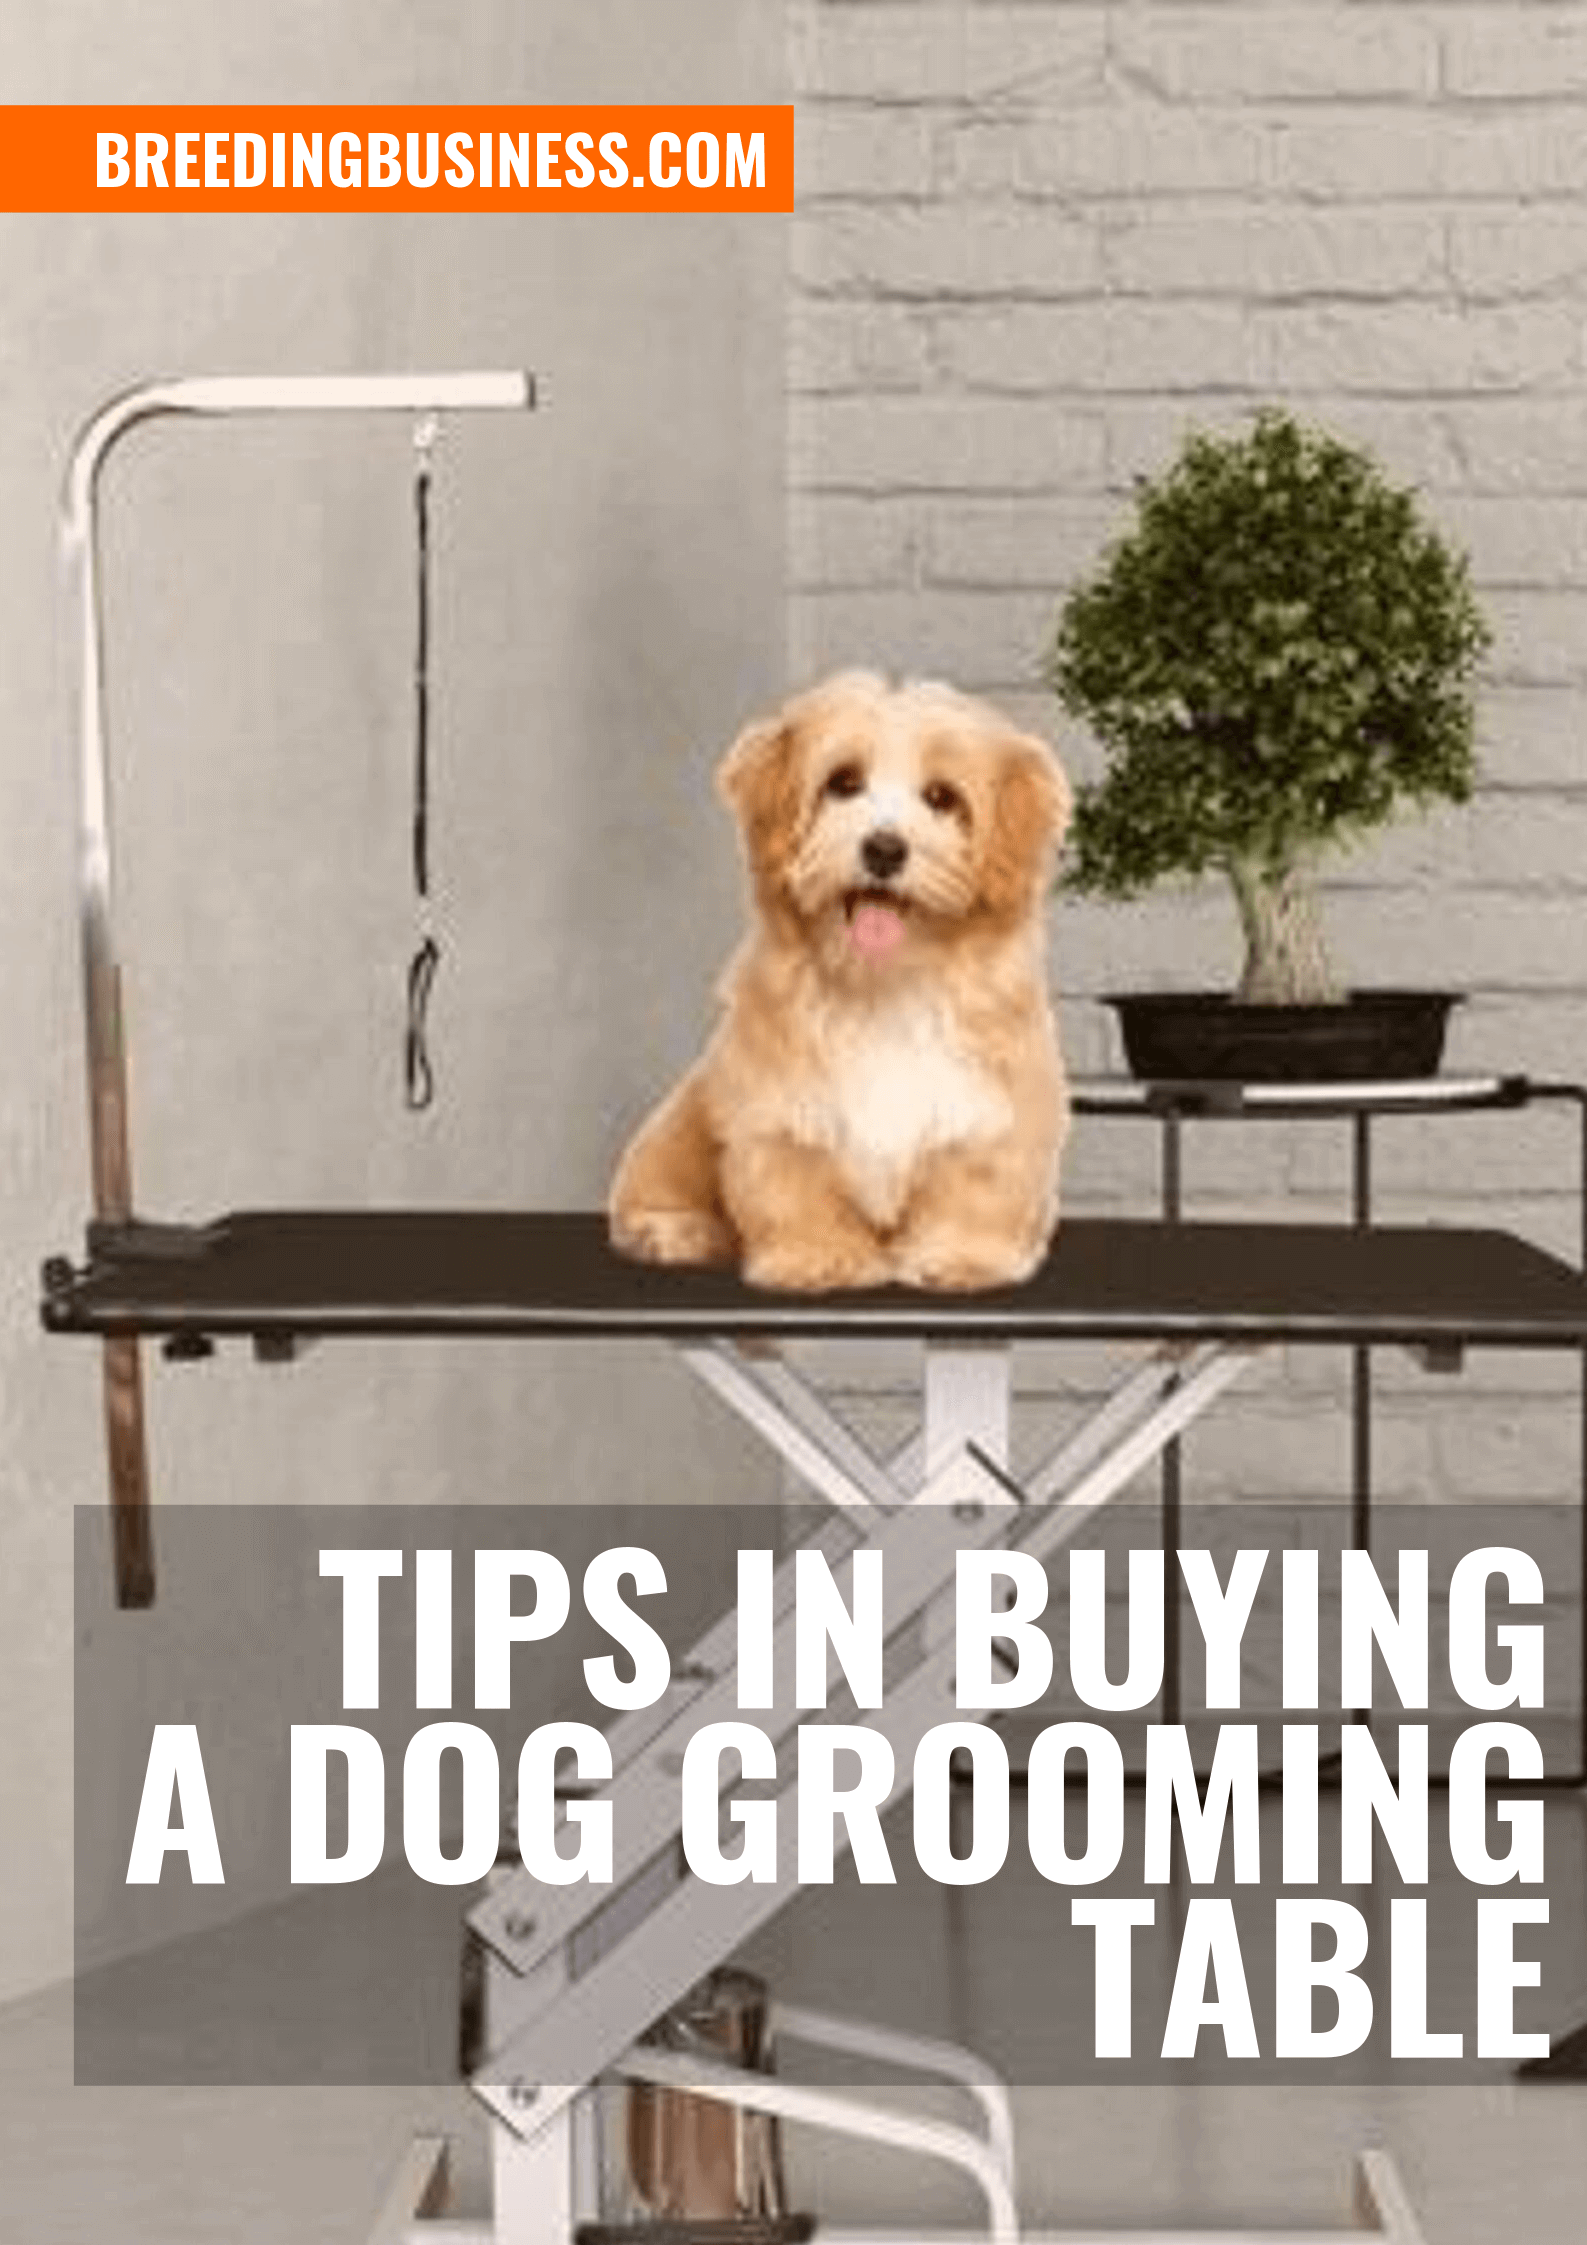 Top Tips When Buying a Dog Grooming Table